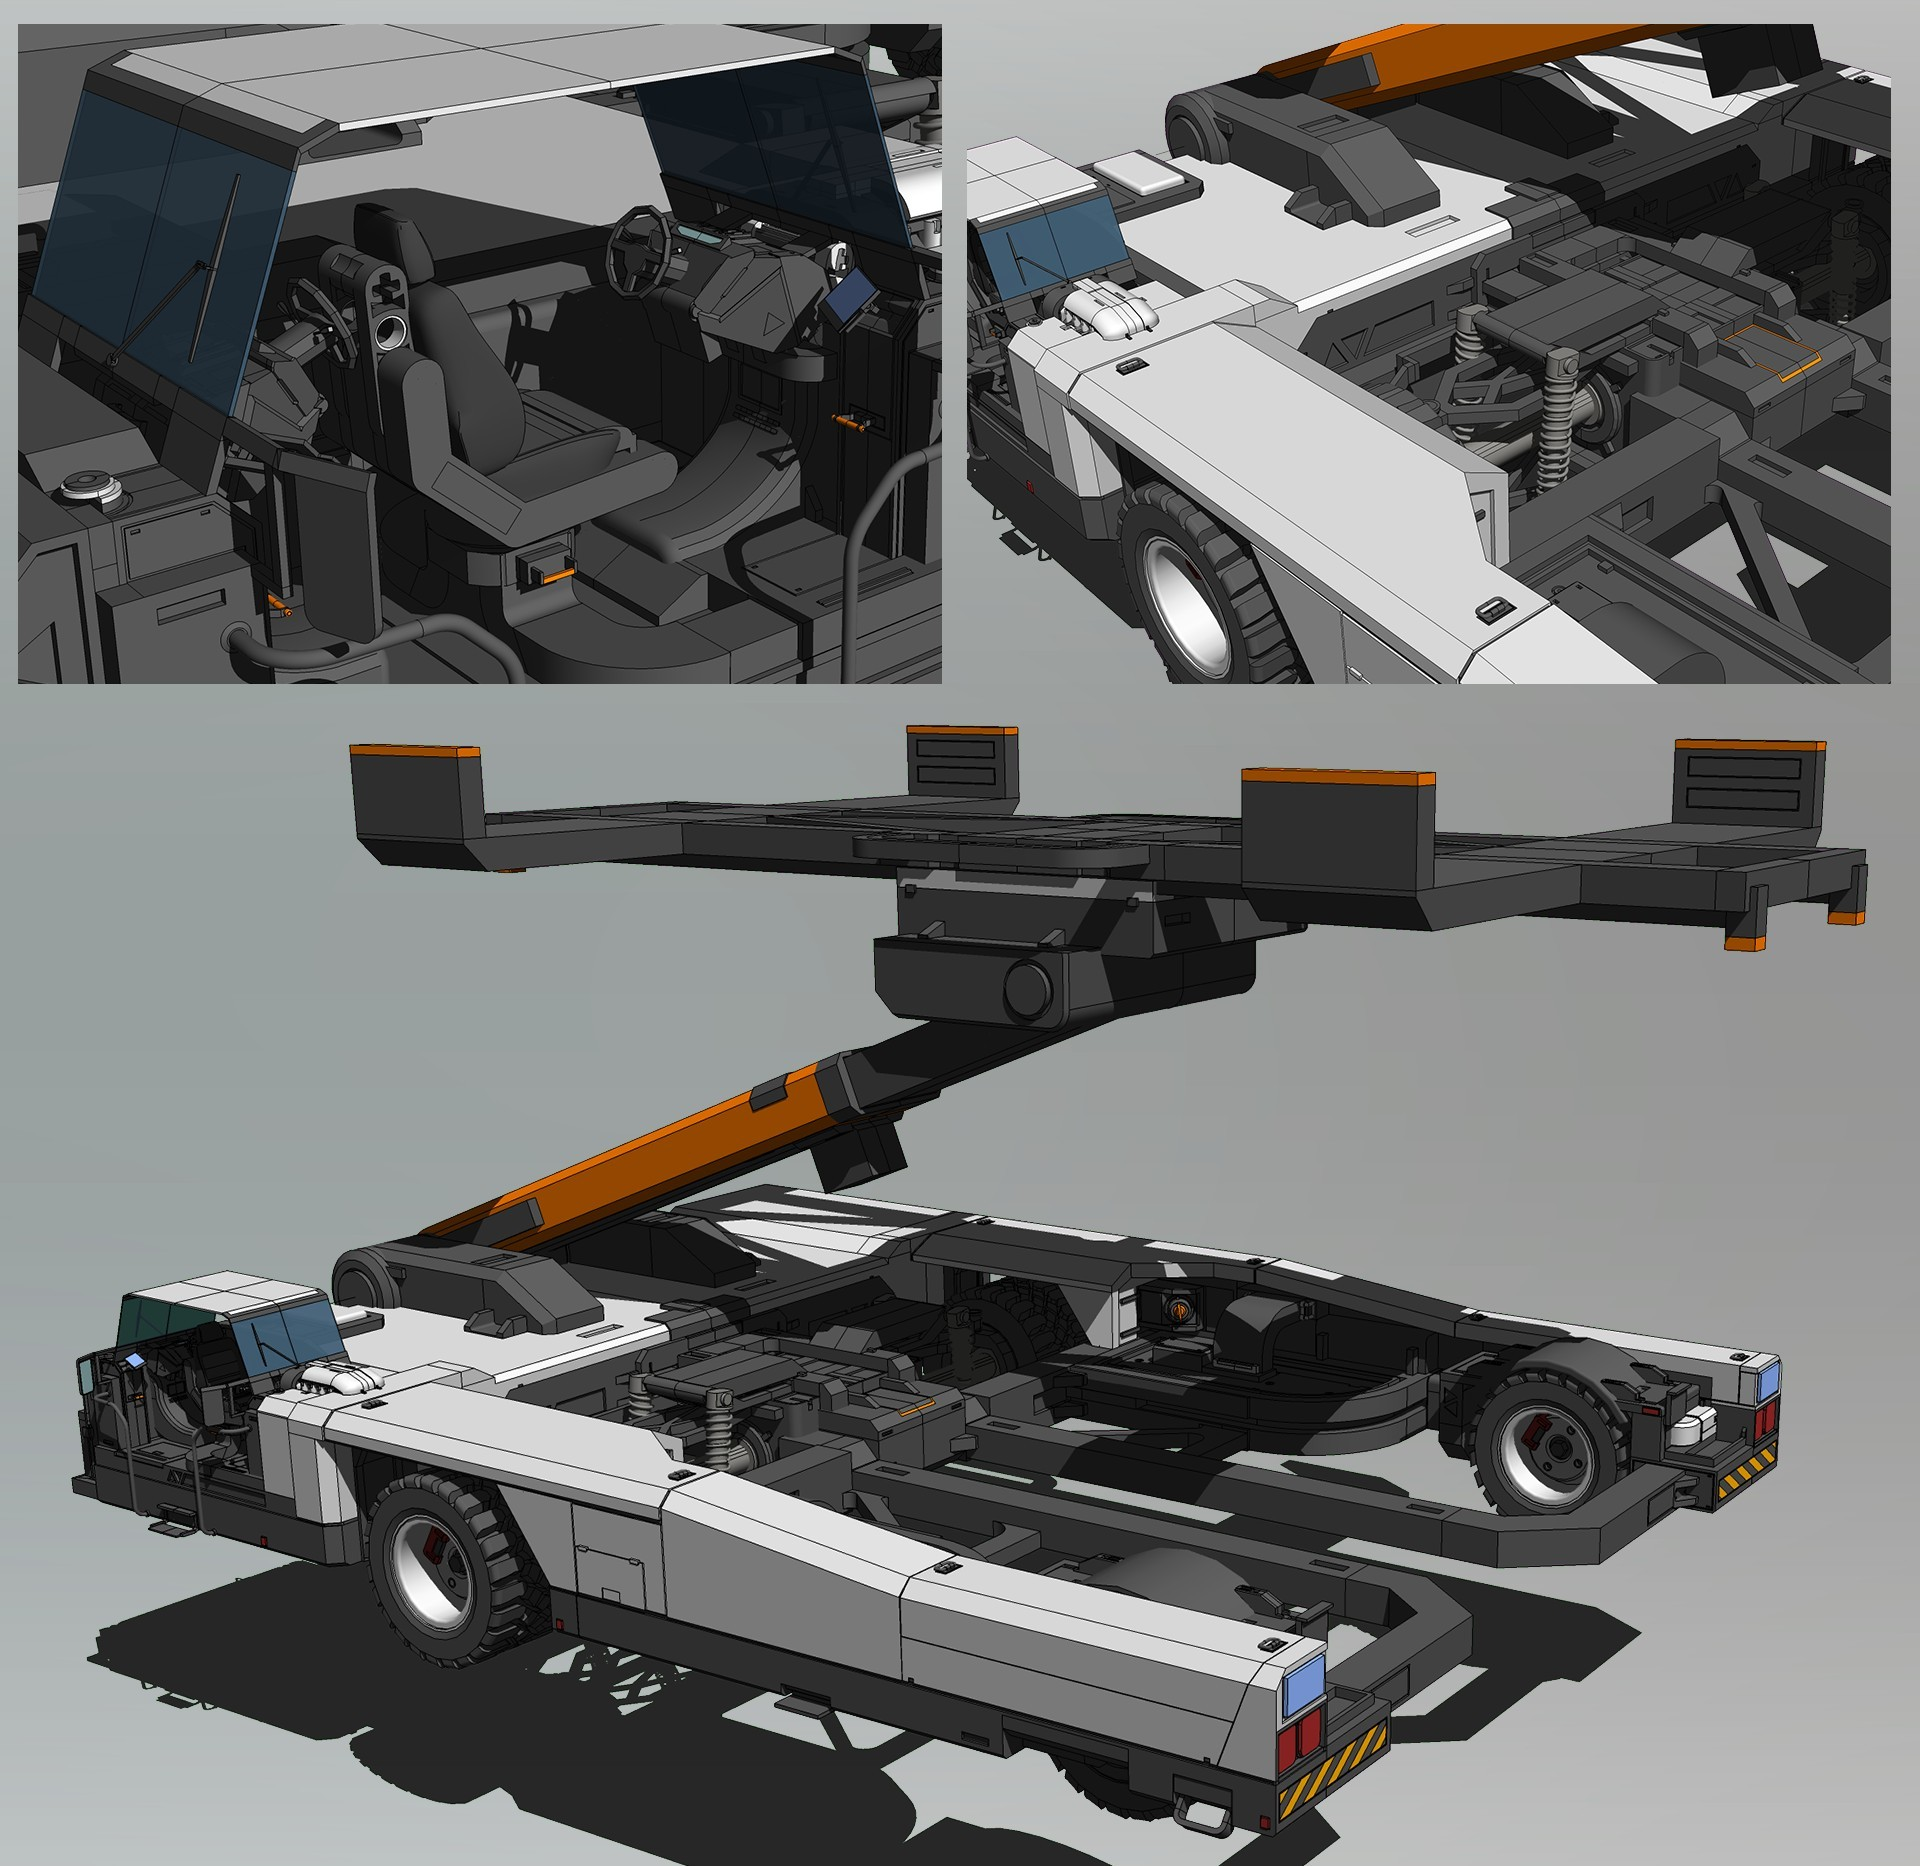 News All No Disassemble Lego Ideas Proposal Makes It Easy To At The Current Moment We Began Reworking Dump Which Is Known Players Who Have Completed Story Third Chapter